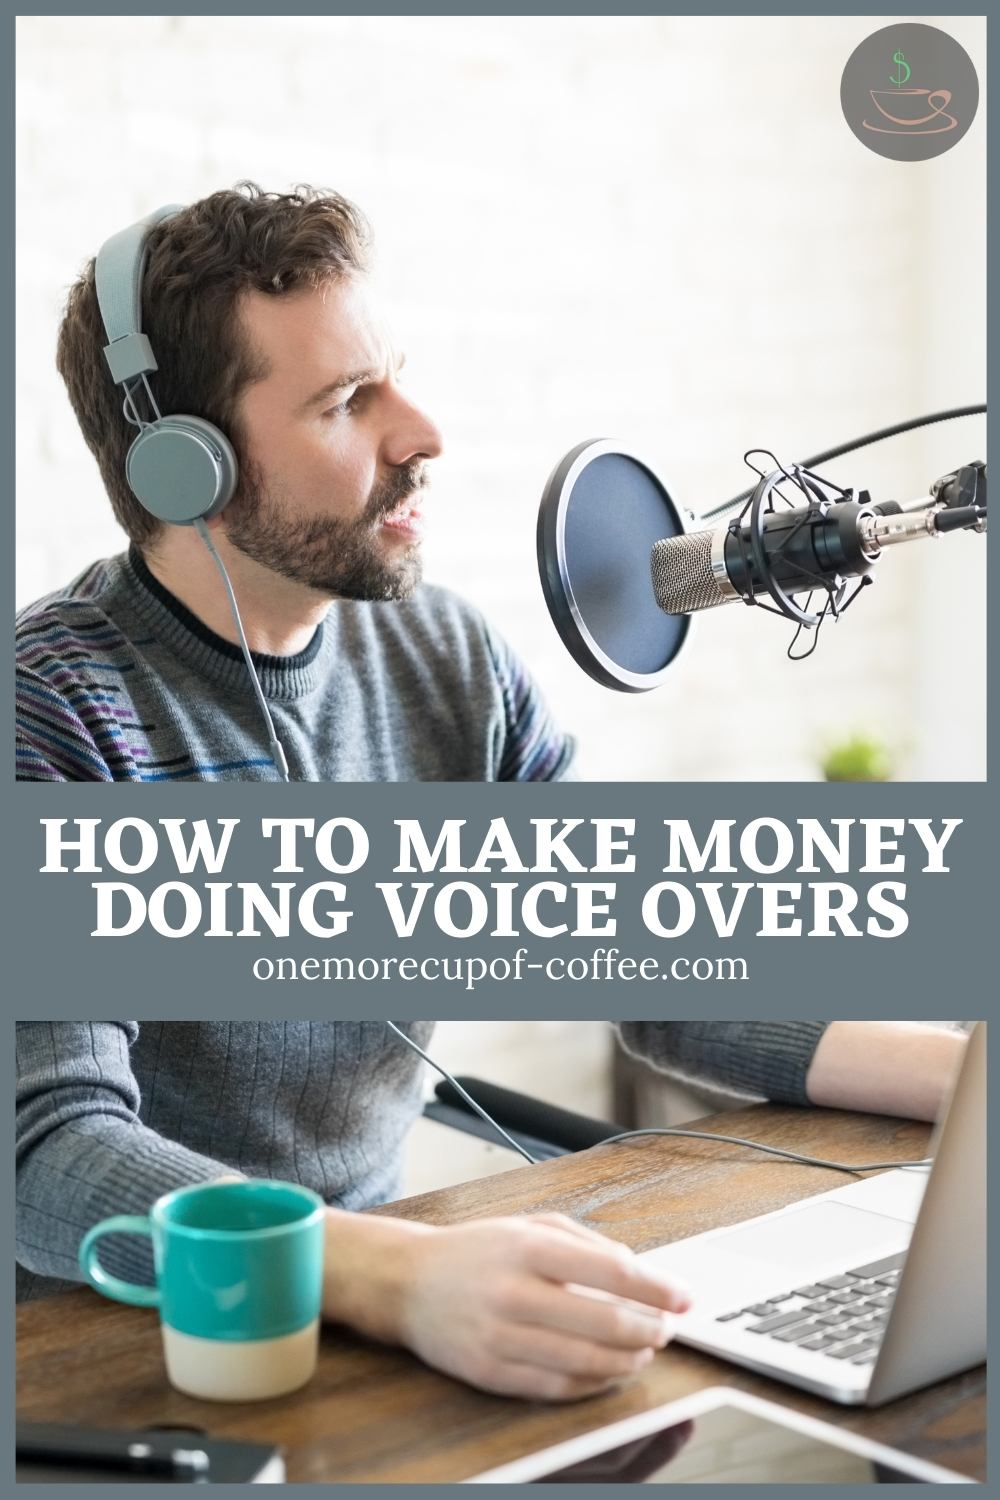 bearded man in grey-blue sweater doing a voice over in front of his equipment, with text overlay in greyish blue banner